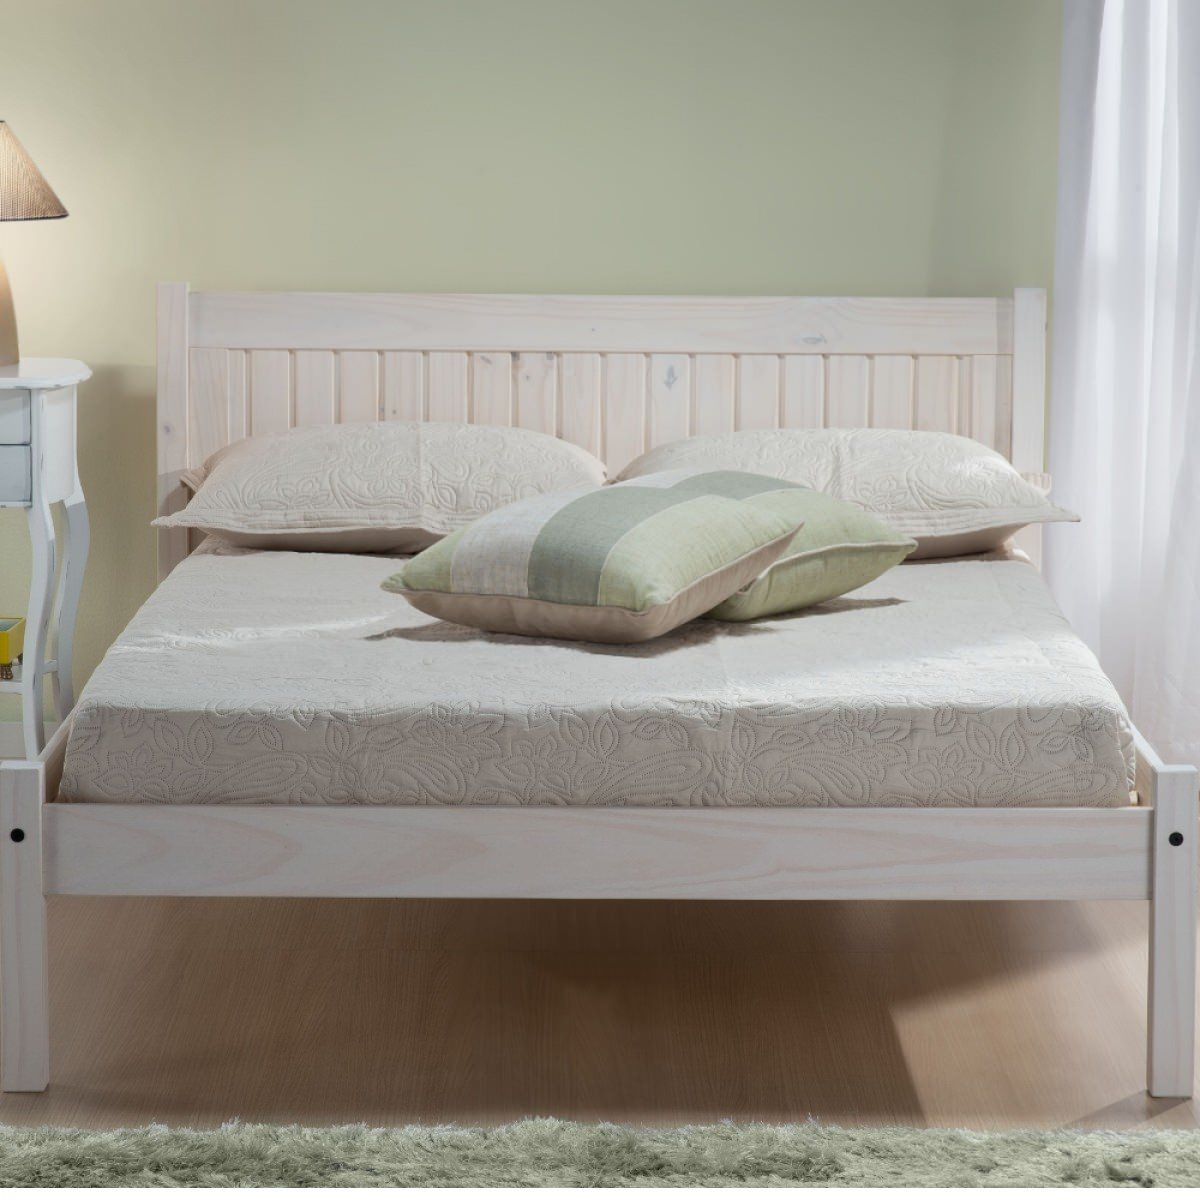 Happy Beds Rio Wooden Bed White Washed Finish Traditional Frame Bedroom 4' Small Double 120 x 190 cm: Amazon